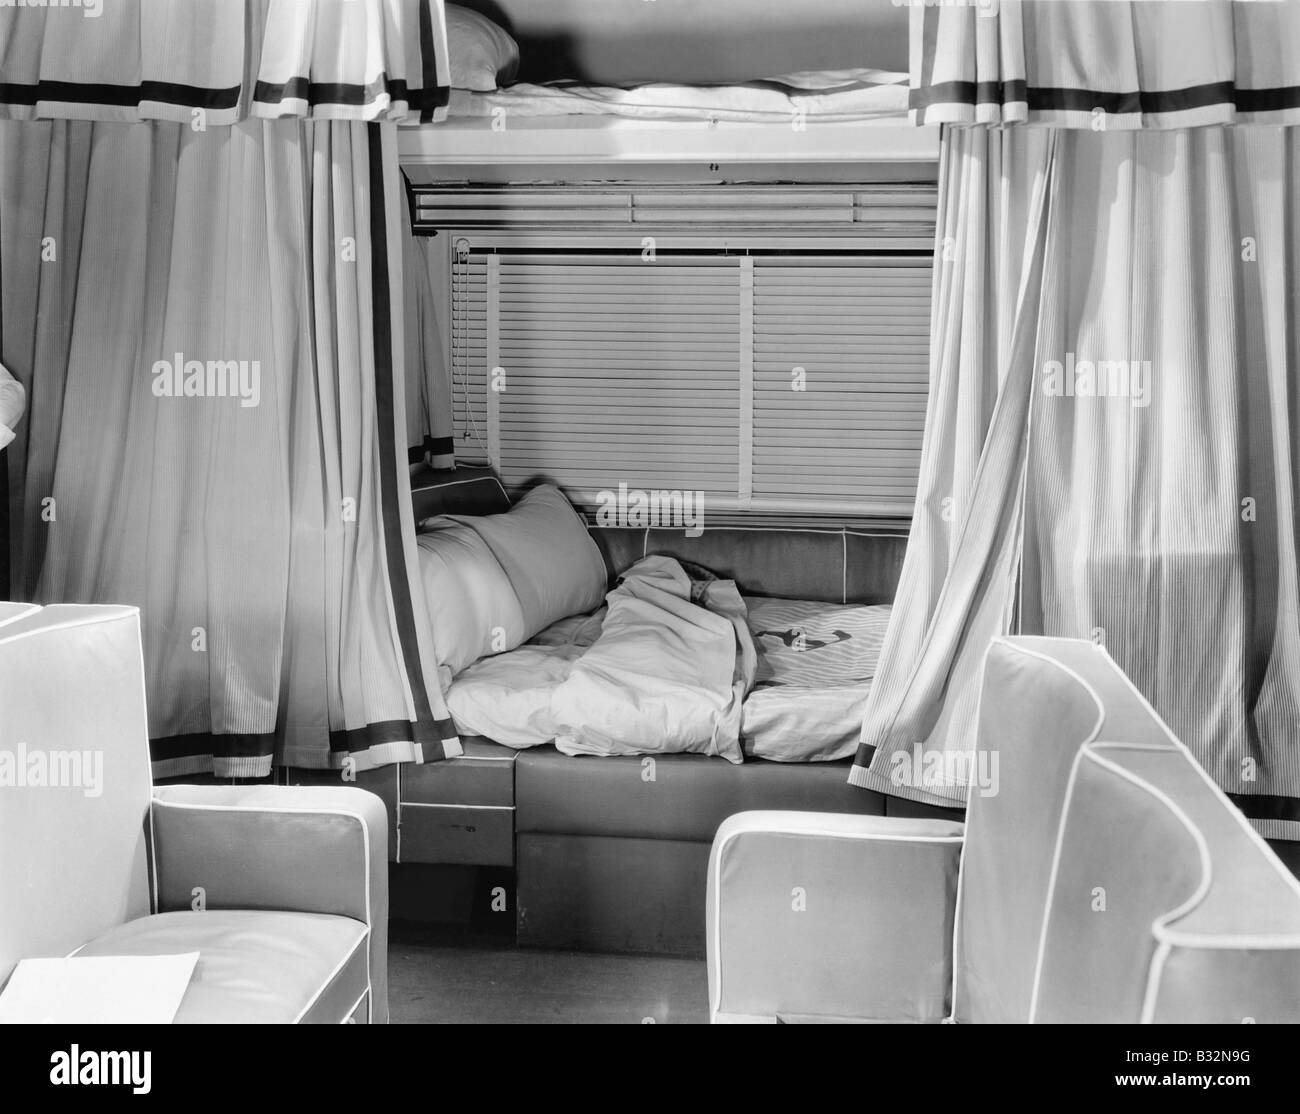 Sleeping compartment on train - Stock Image